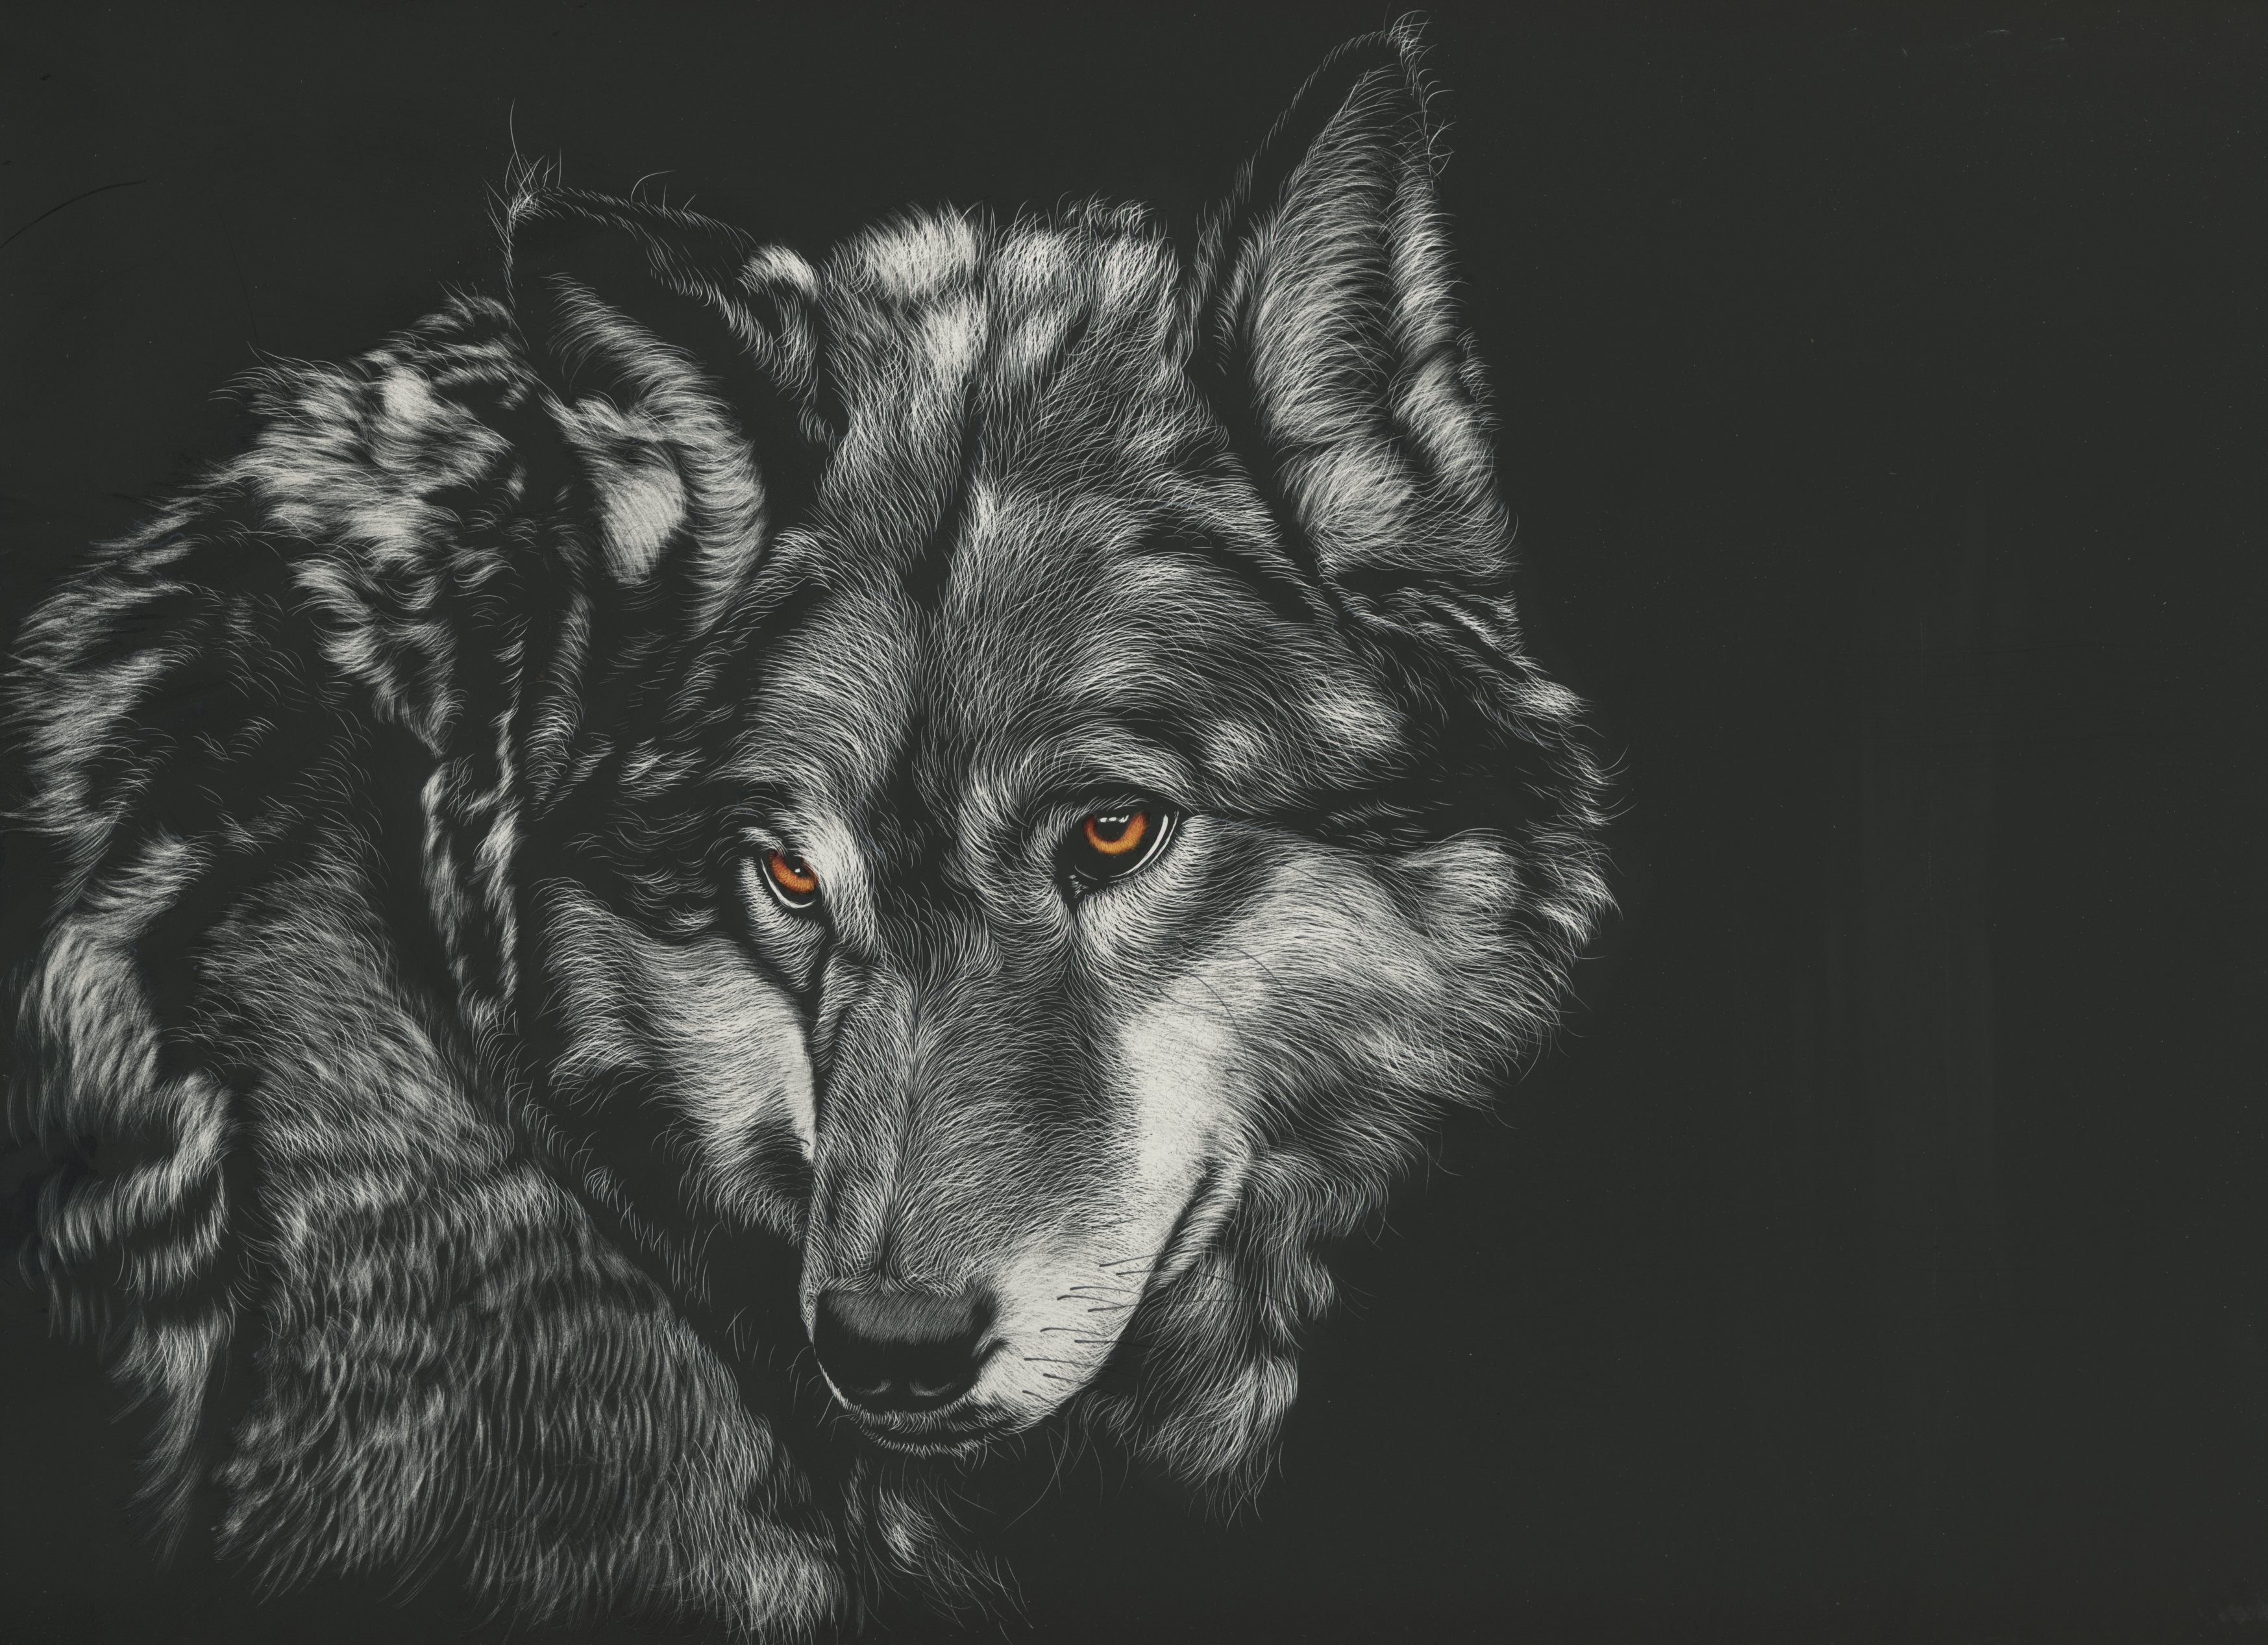 1440x2960 Wolf Painting 4k Samsung Galaxy Note 9 8 S9 S8 S8 Qhd Hd 4k Wallpapers Images Backgrounds Photos And Pictures